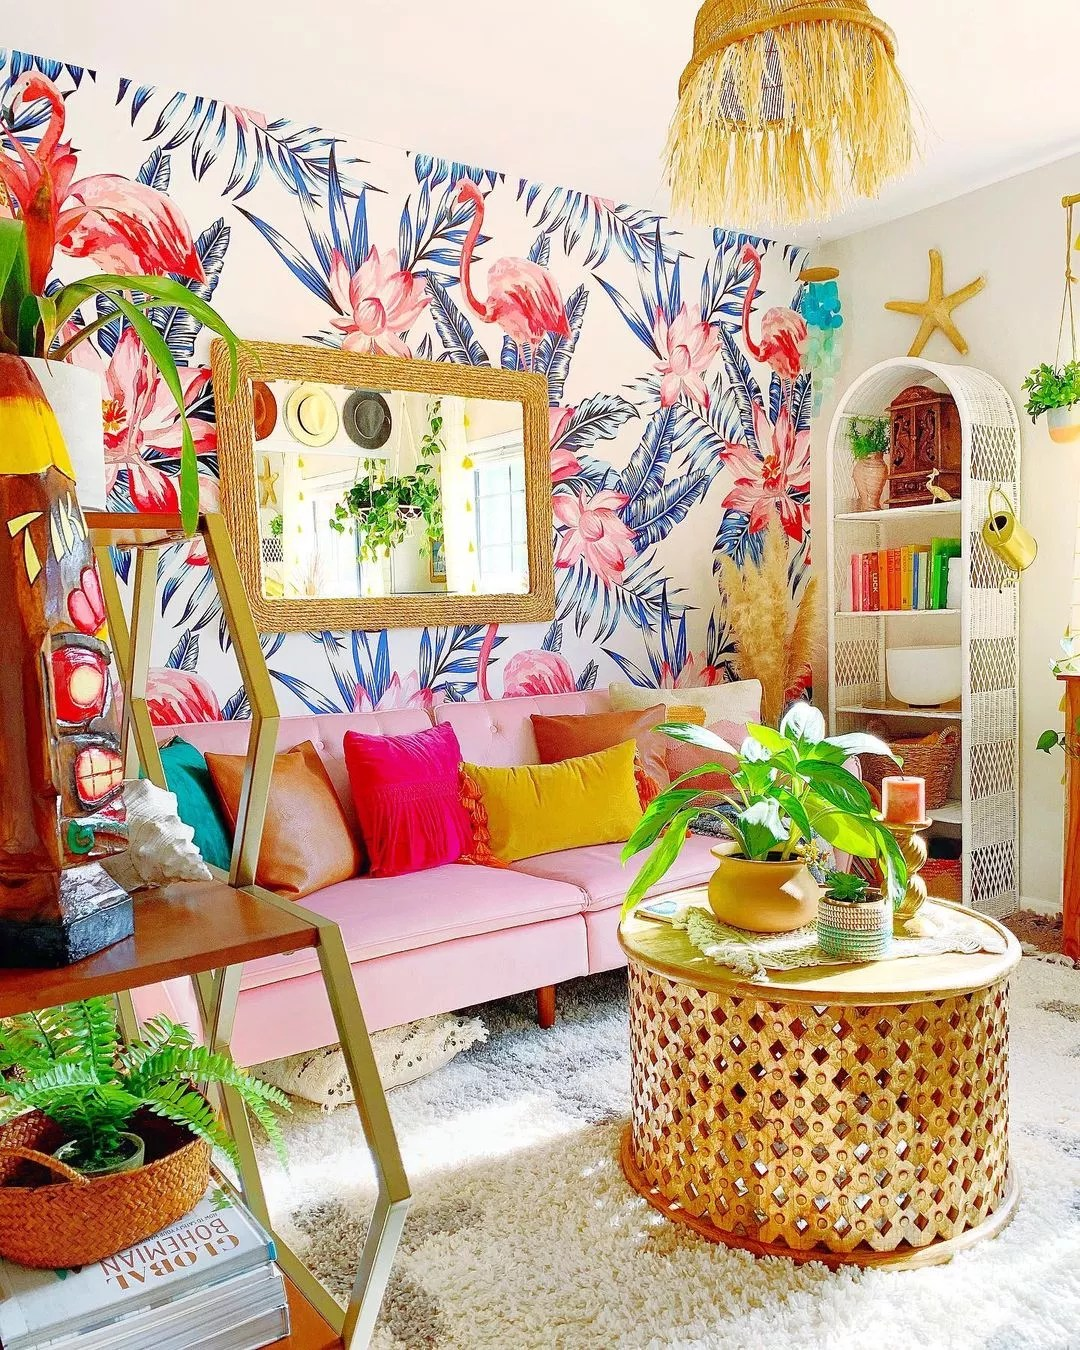 Bright, clean room featuring plants, wall hangings, sofa, rug, and unique statement wallpaper of blue palm leaves, pink waterlilies, and flamingos. Photo by Instagram user @sare_xo_home.